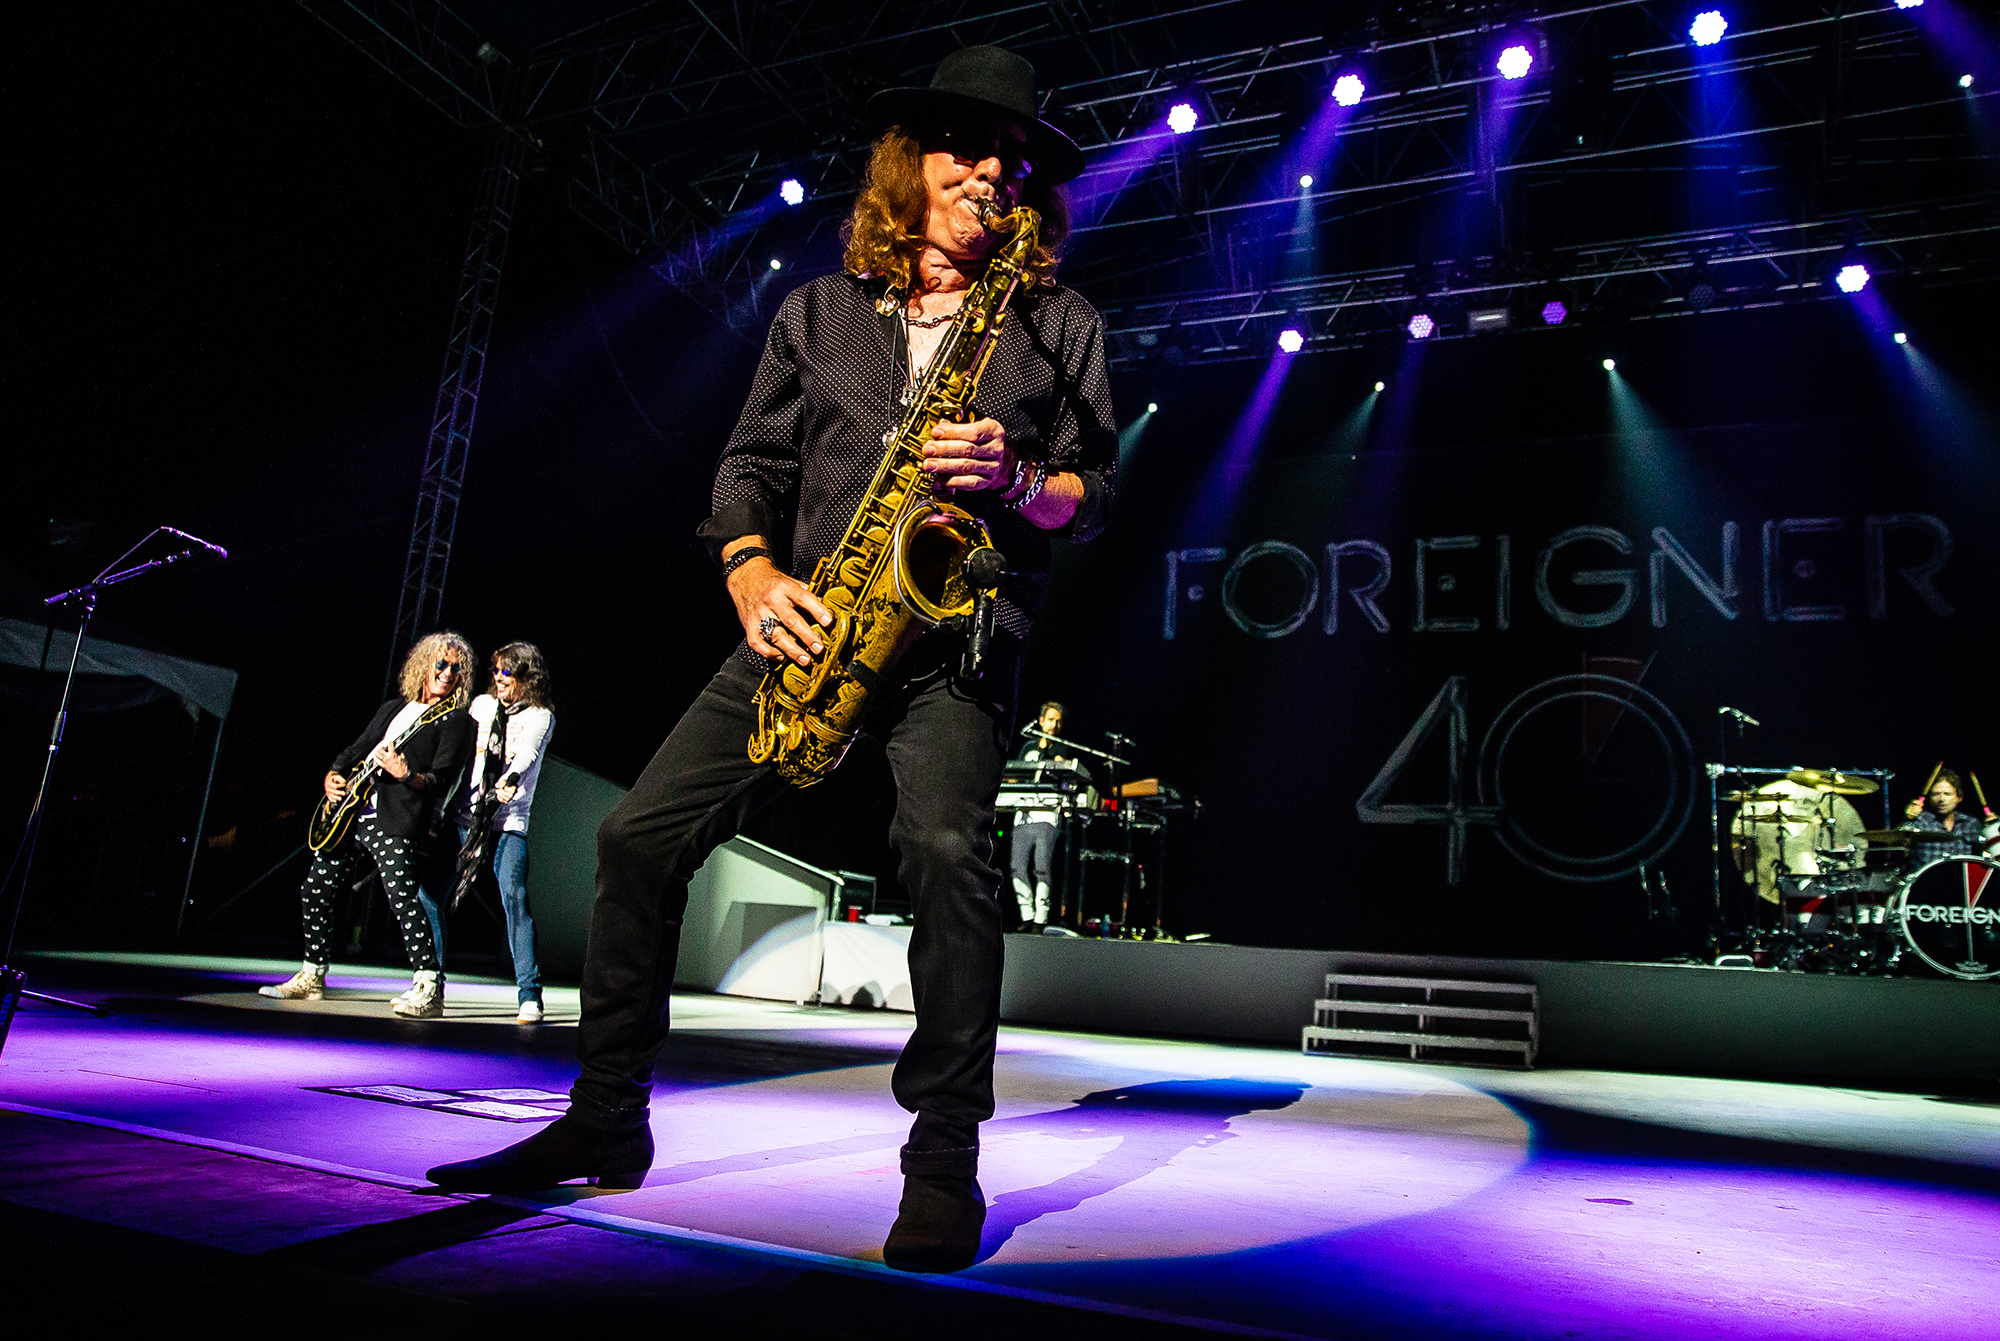 Tom Gimbel on the saxophone with Foreigner as the band  performs on the Grandstand Stage during the Illinois State Fair at the Illinois State Fairgrounds, Sunday, Aug. 12, 2018, in Springfield, Ill. [Justin L. Fowler/The State Journal-Register]